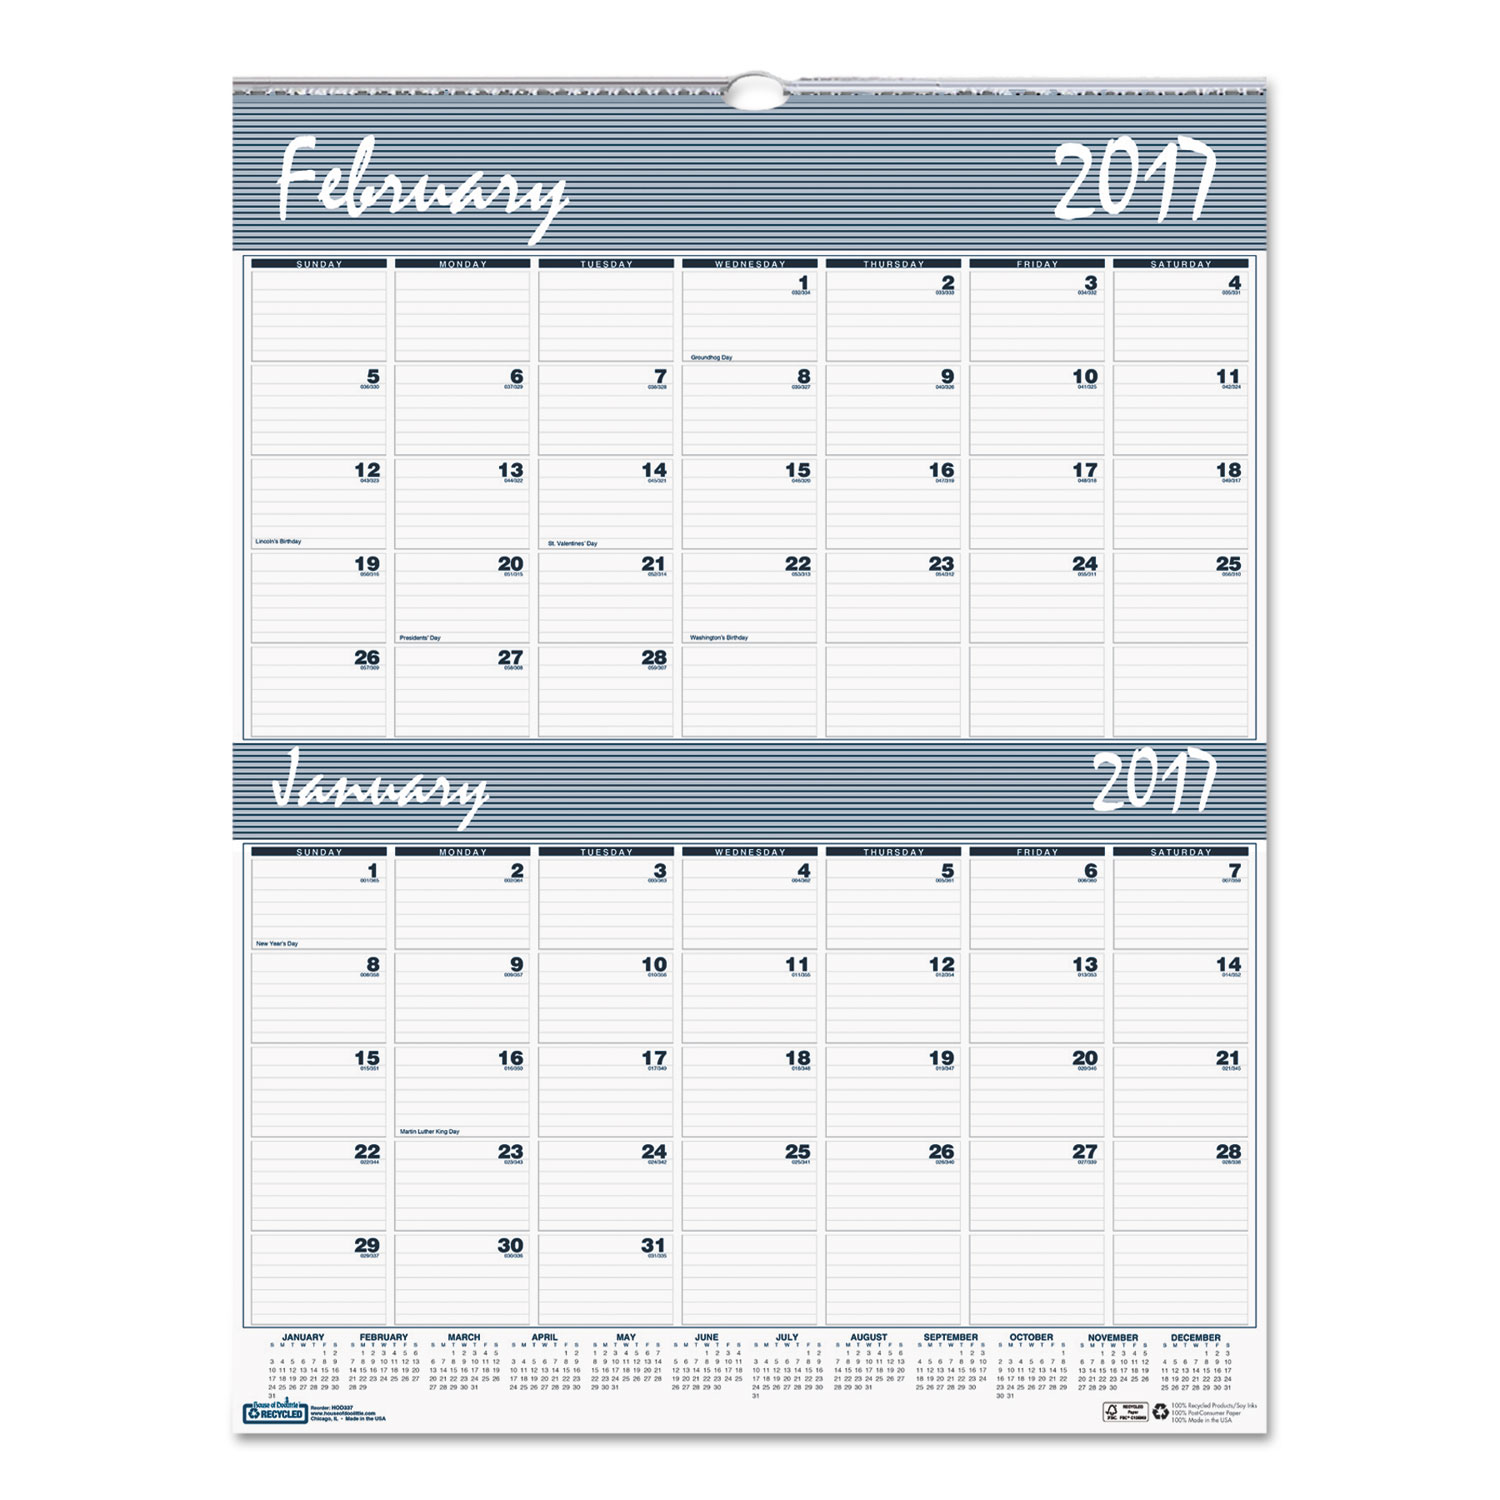 Printable calendar 4 months per page four month calendar on one.